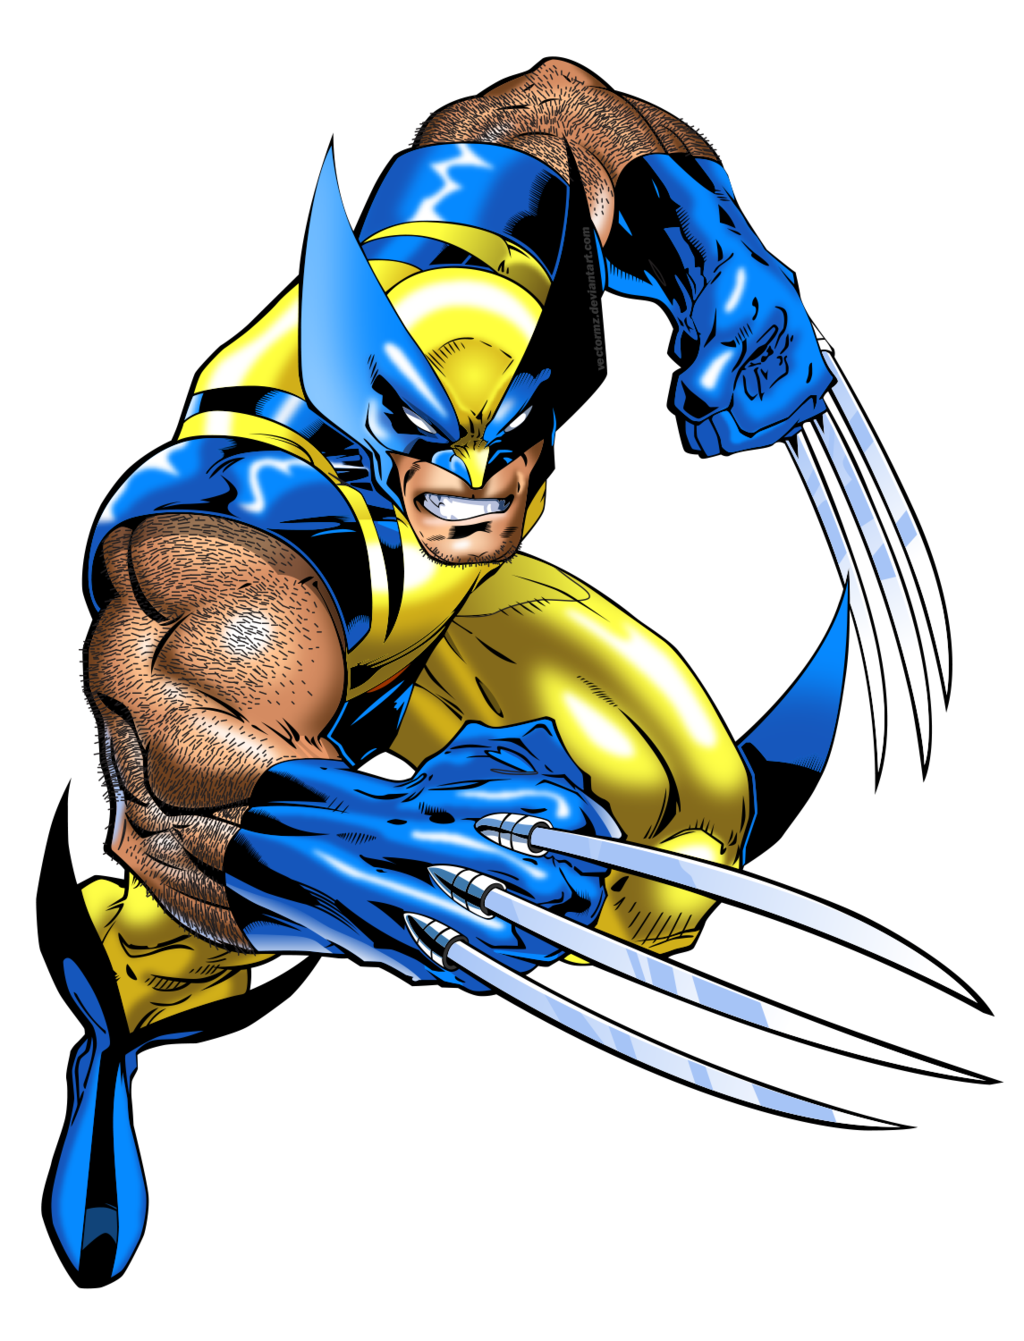 Download hq image freepngimg. Wolverine png picture stock